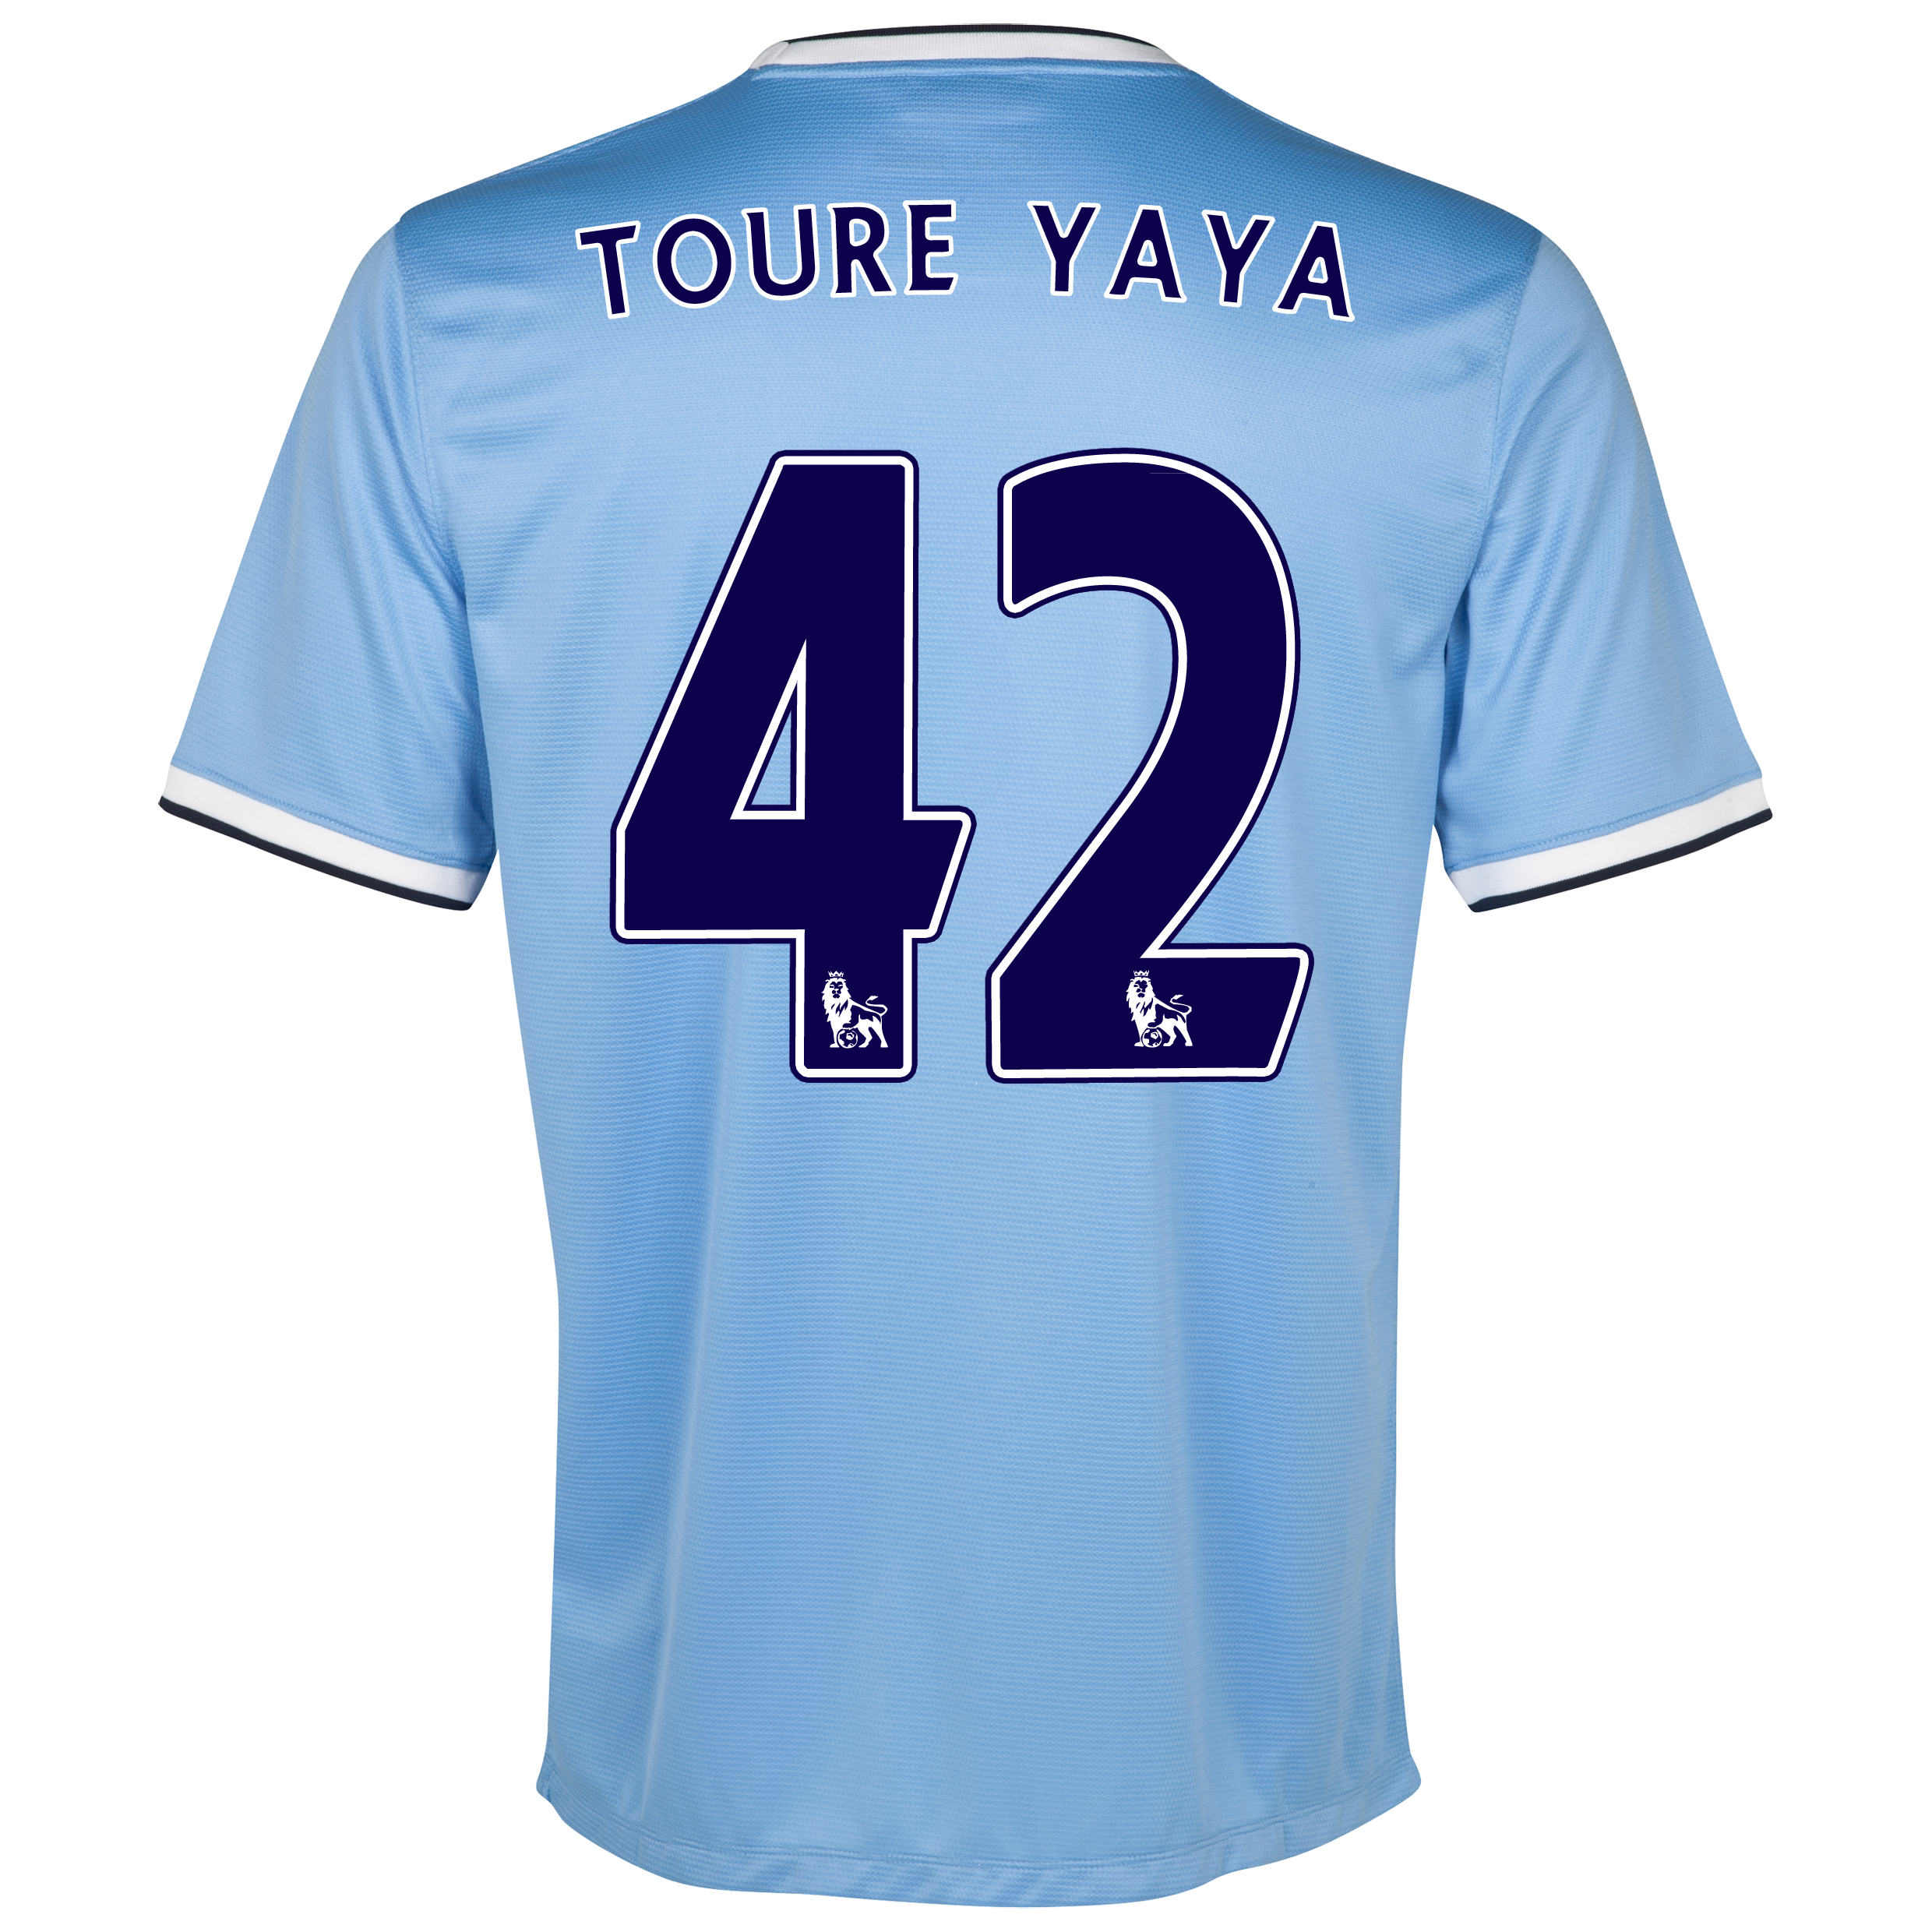 Manchester City Home Shirt 2013/14 with Toure Yaya 42 printing